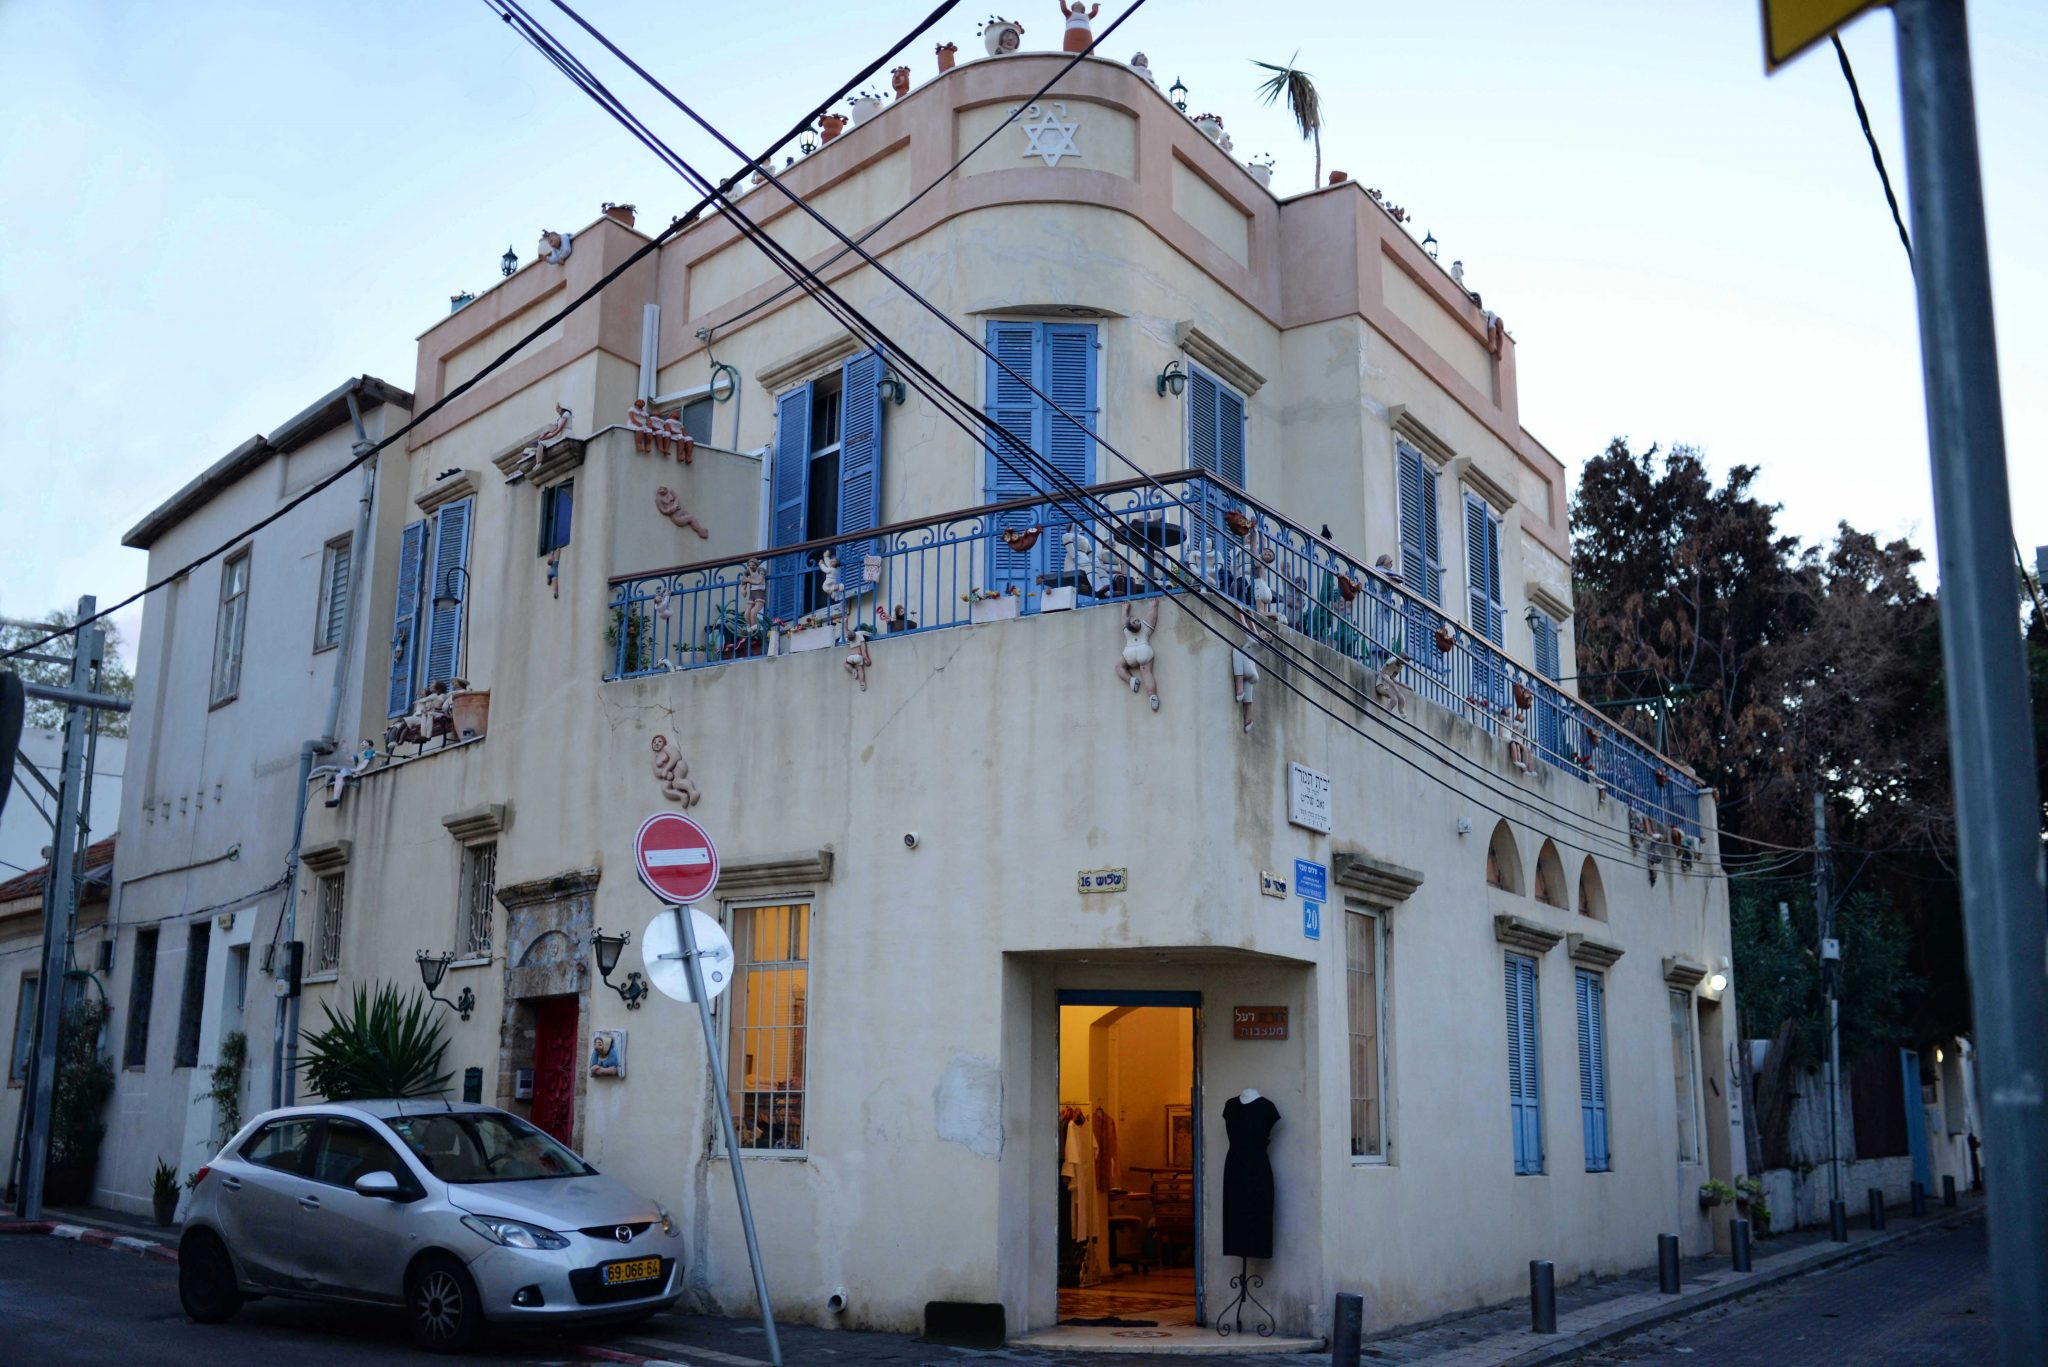 Building in picturesque Neve Tzedek